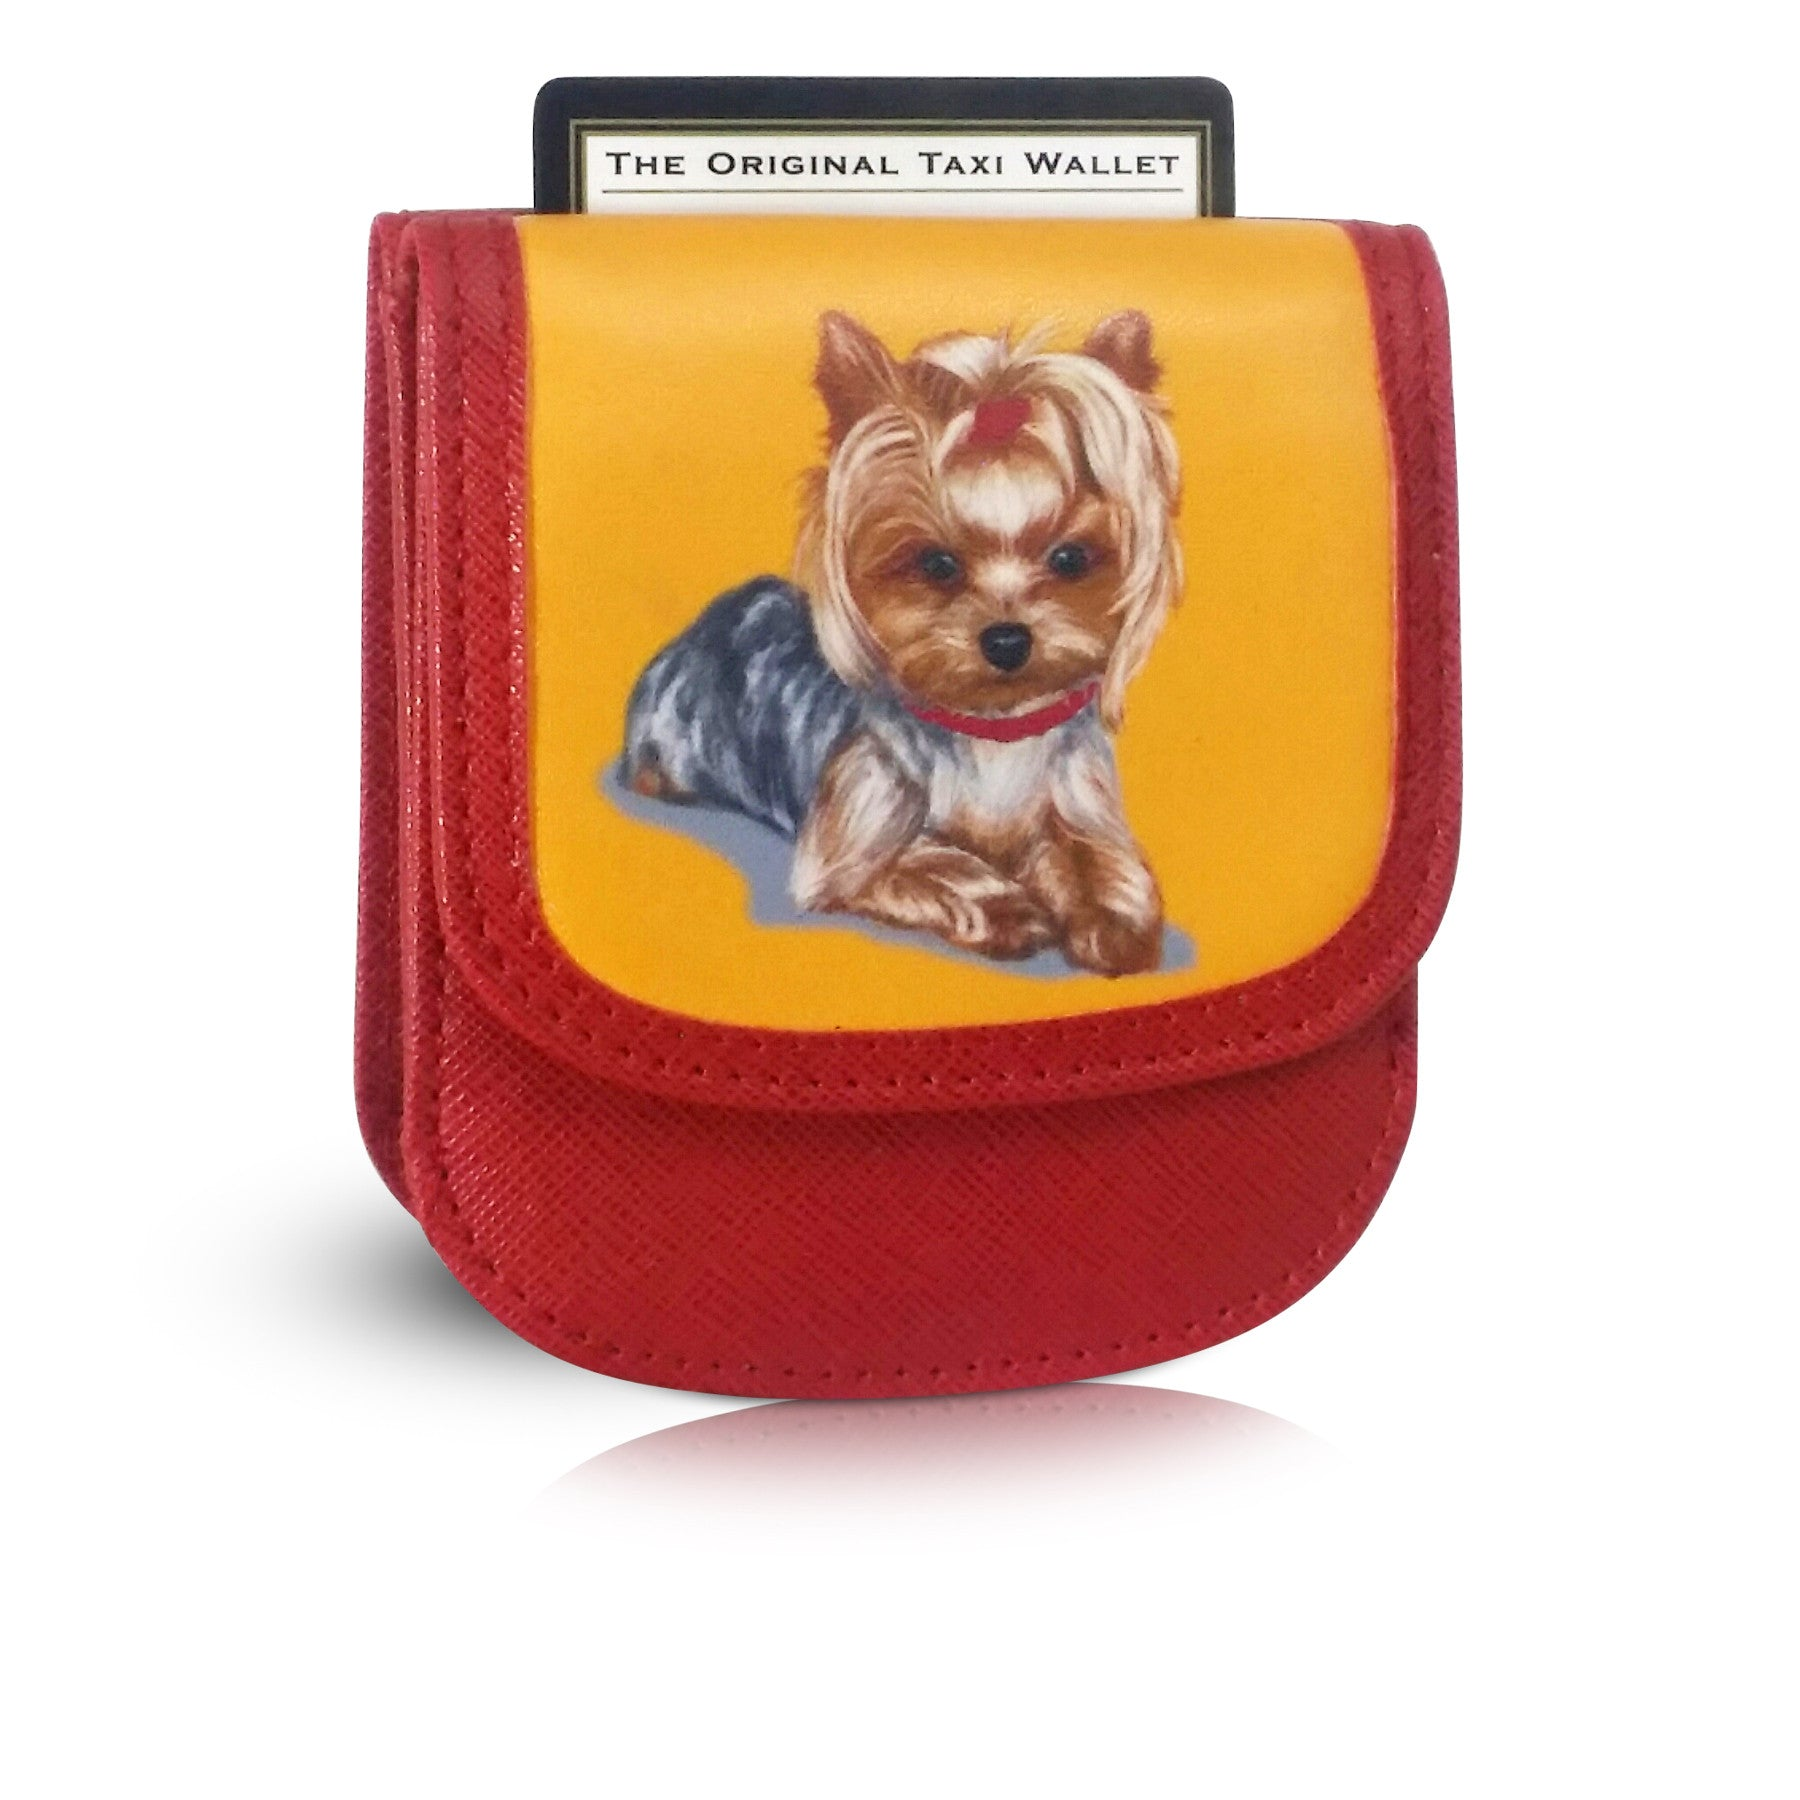 YORKIE Small Folding RFID Vegan Leather Minimalist Card Wallet by TAXI WALLET® for Women Coin Purse